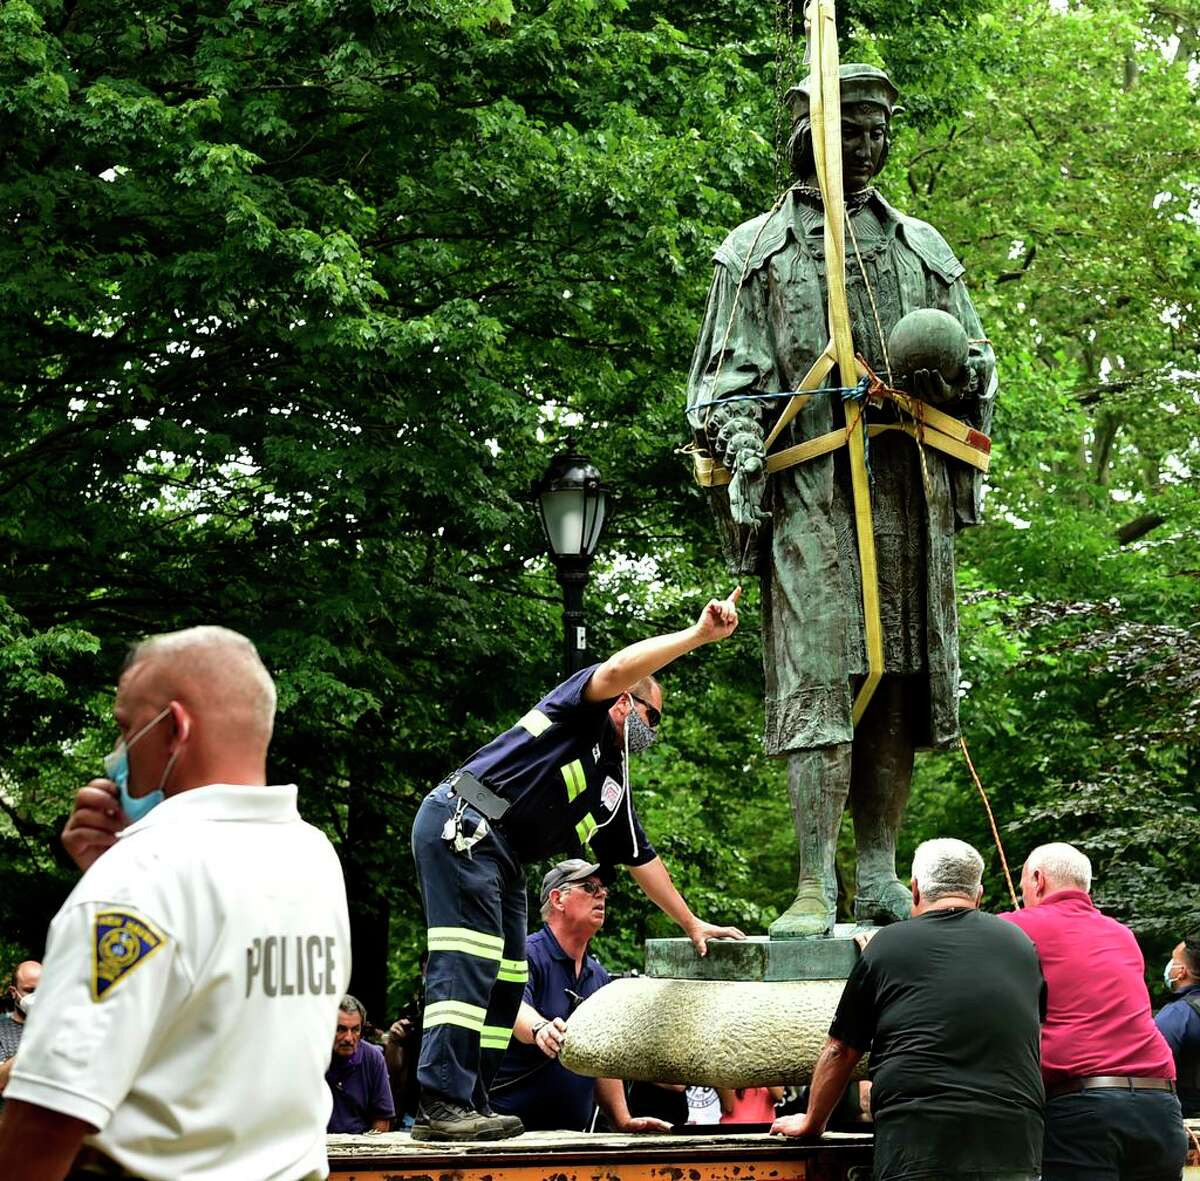 The statue of Christopher Columbus was removed from Wooster Square park June 24, 2020 after a skirmish erupted early in the morning between people of opposing viewpoints. Later, with a large police presence, hundreds of people gathered to watch the removal of the monument and demonstrate against racism.